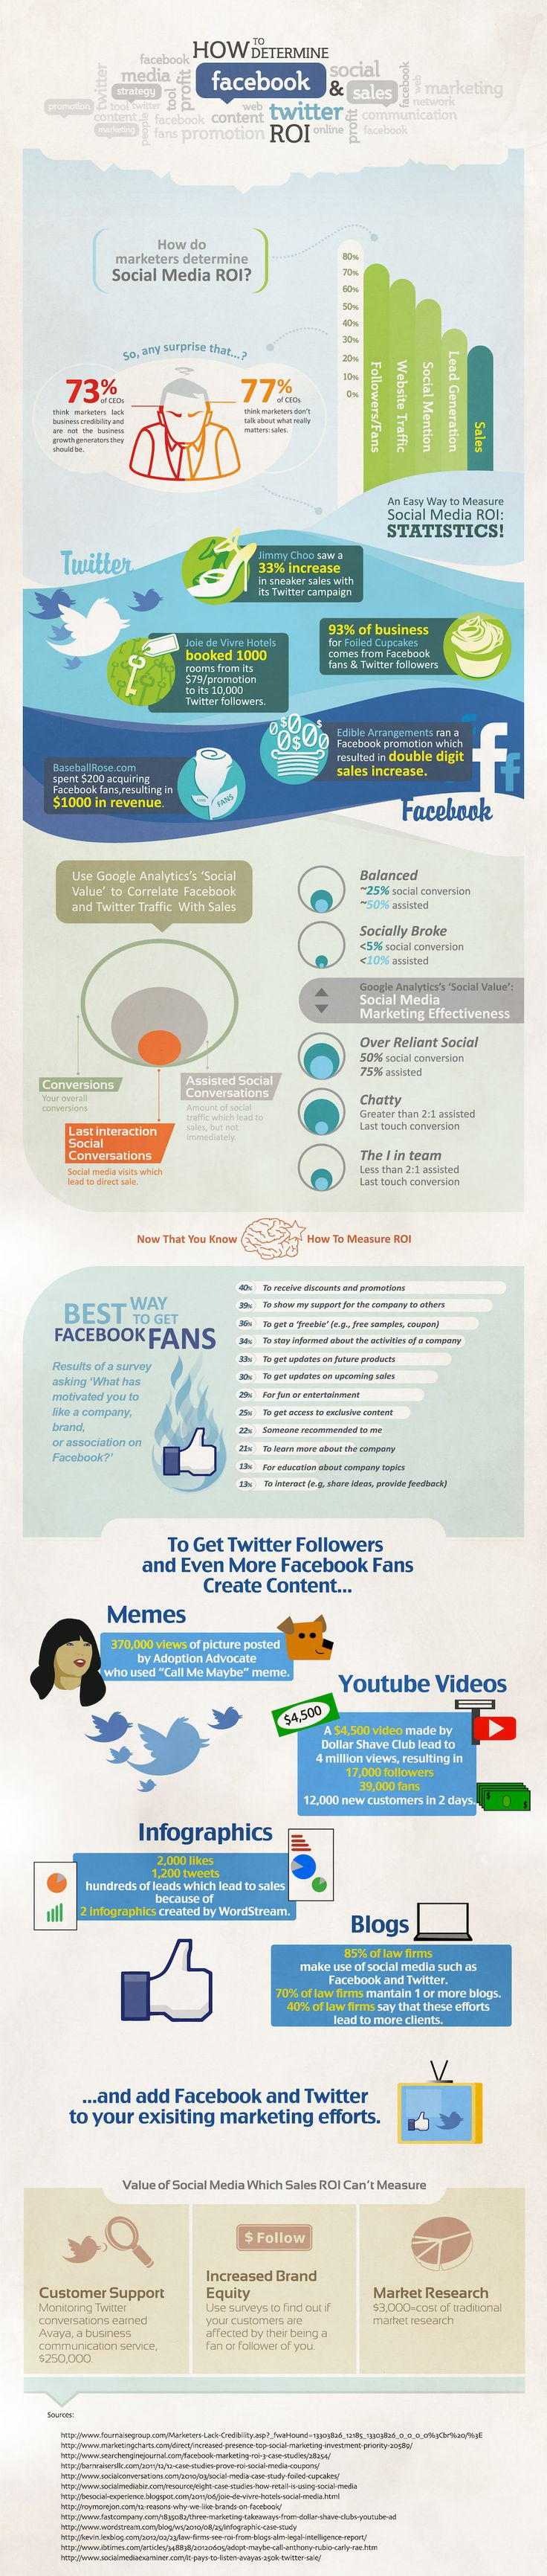 How To Determine Facebook And Twitter ROI - InfographicRoi Infographic, Determination Facebook, Social Media, El Roi, Media Infographic, Media Roi, Measuring Social, Socialmedia, Twitter Roi